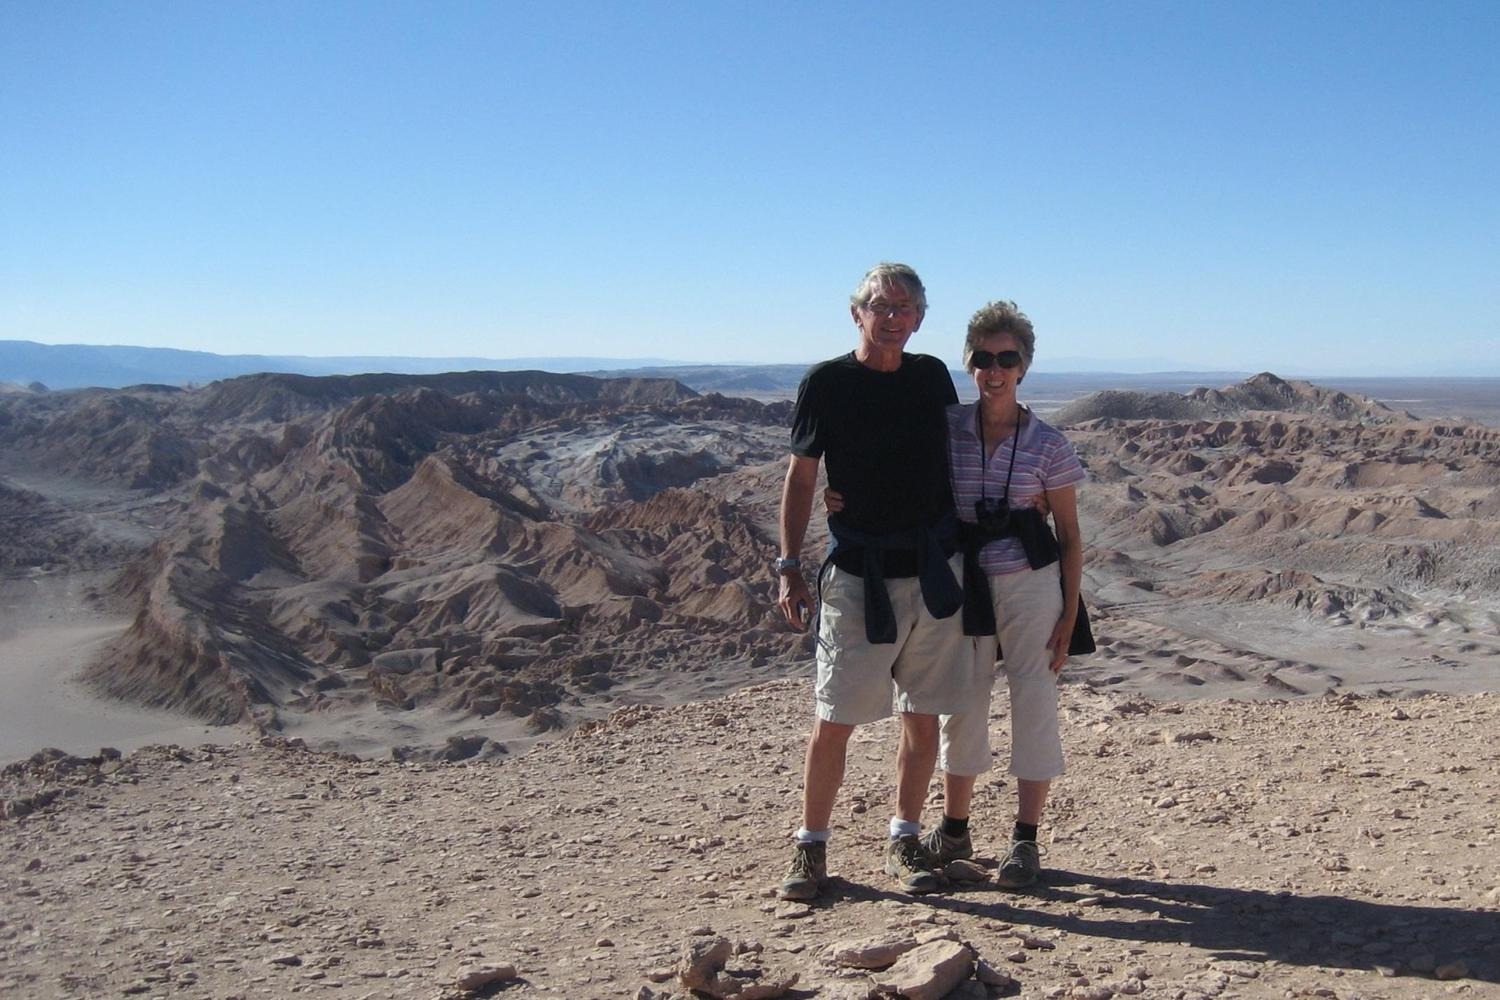 Standing on the edge of the Atacama desert